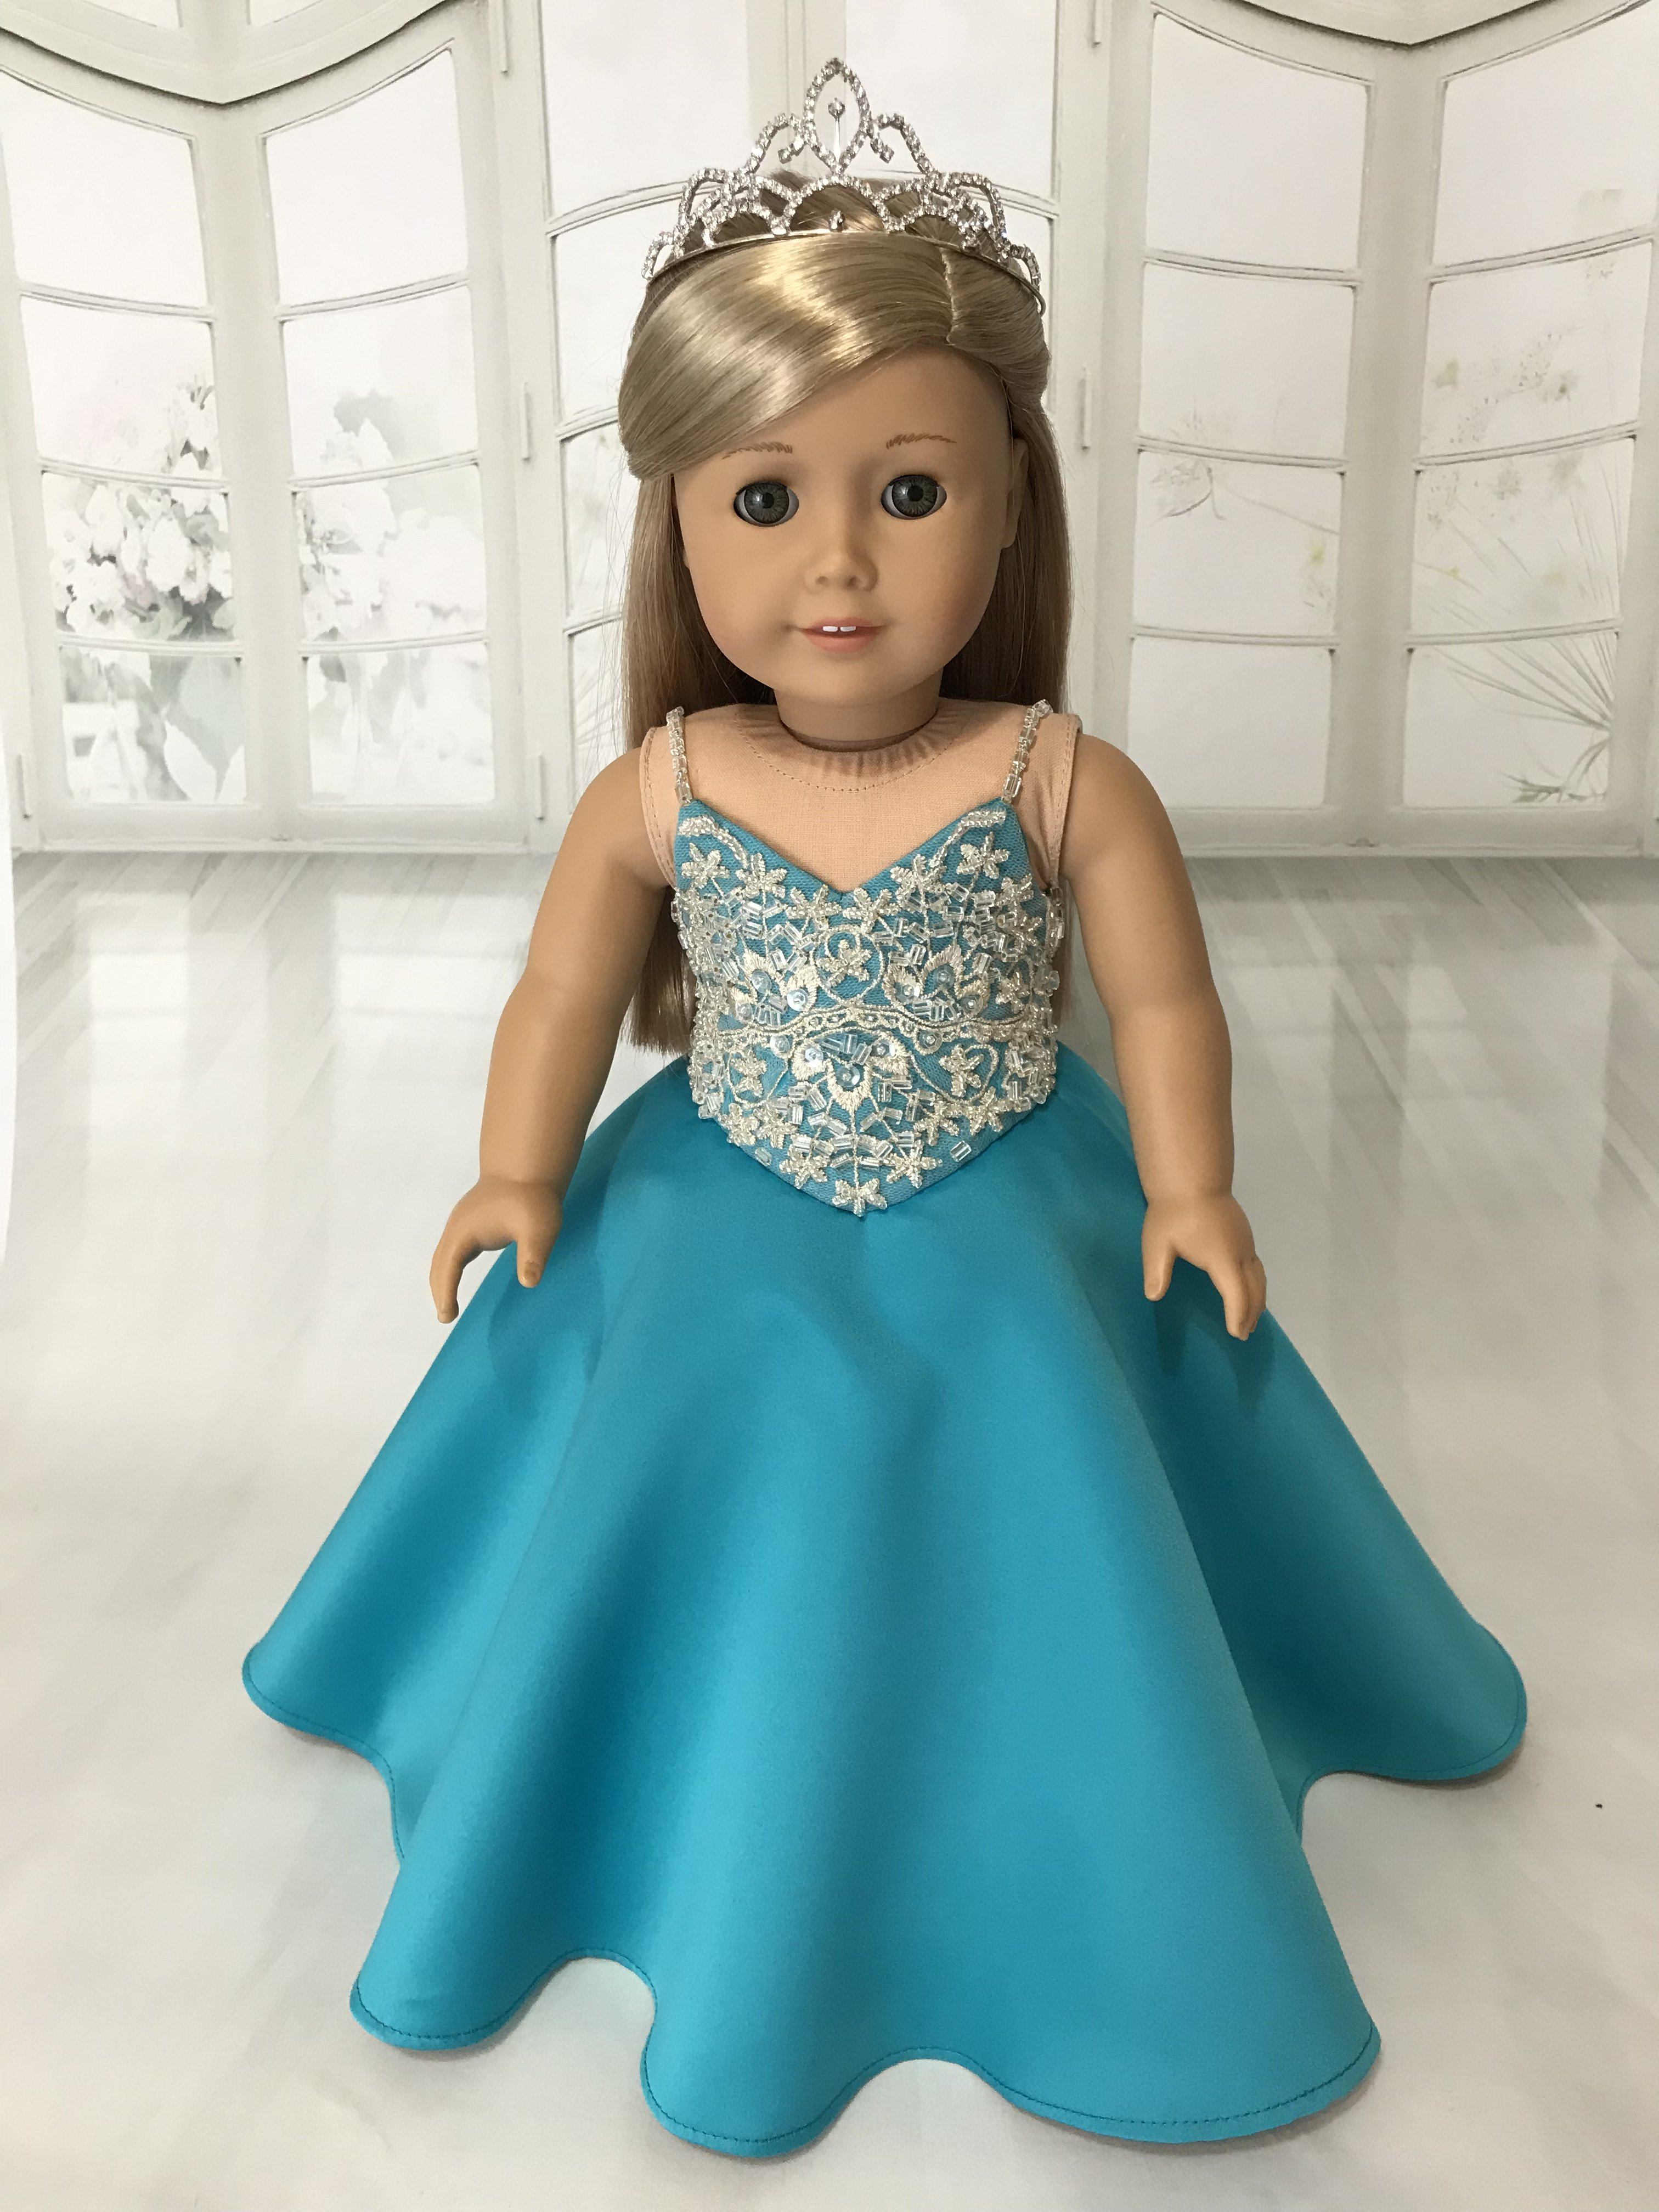 Jade Satin /& Lace Party Dress fits American Girl Doll